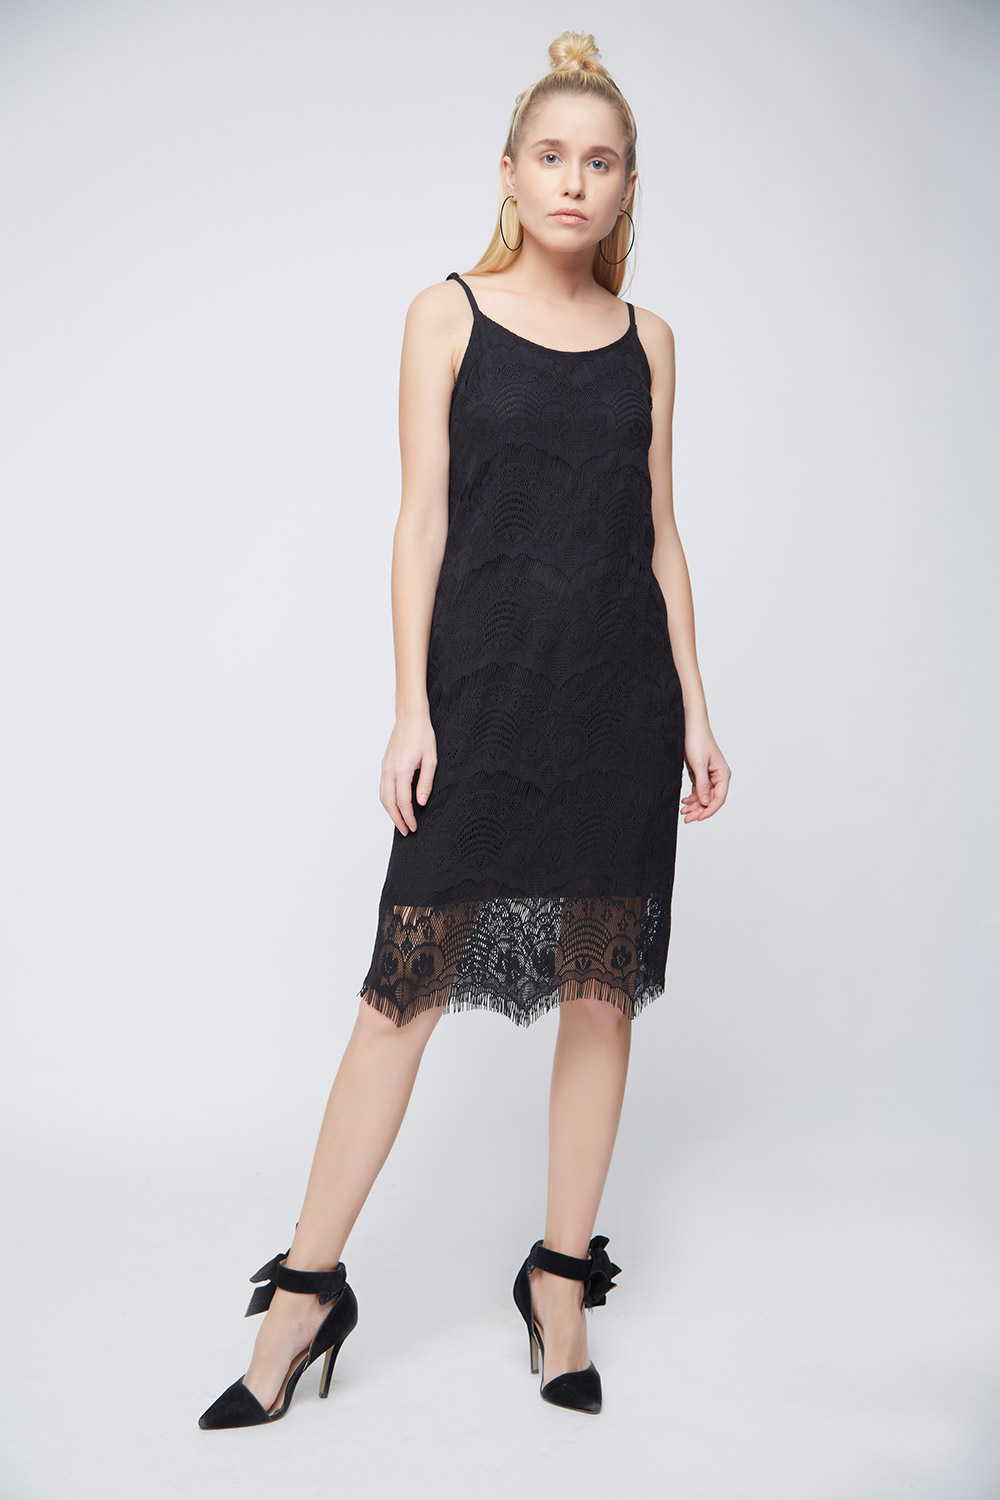 Black Lace Scalloped Dress -2